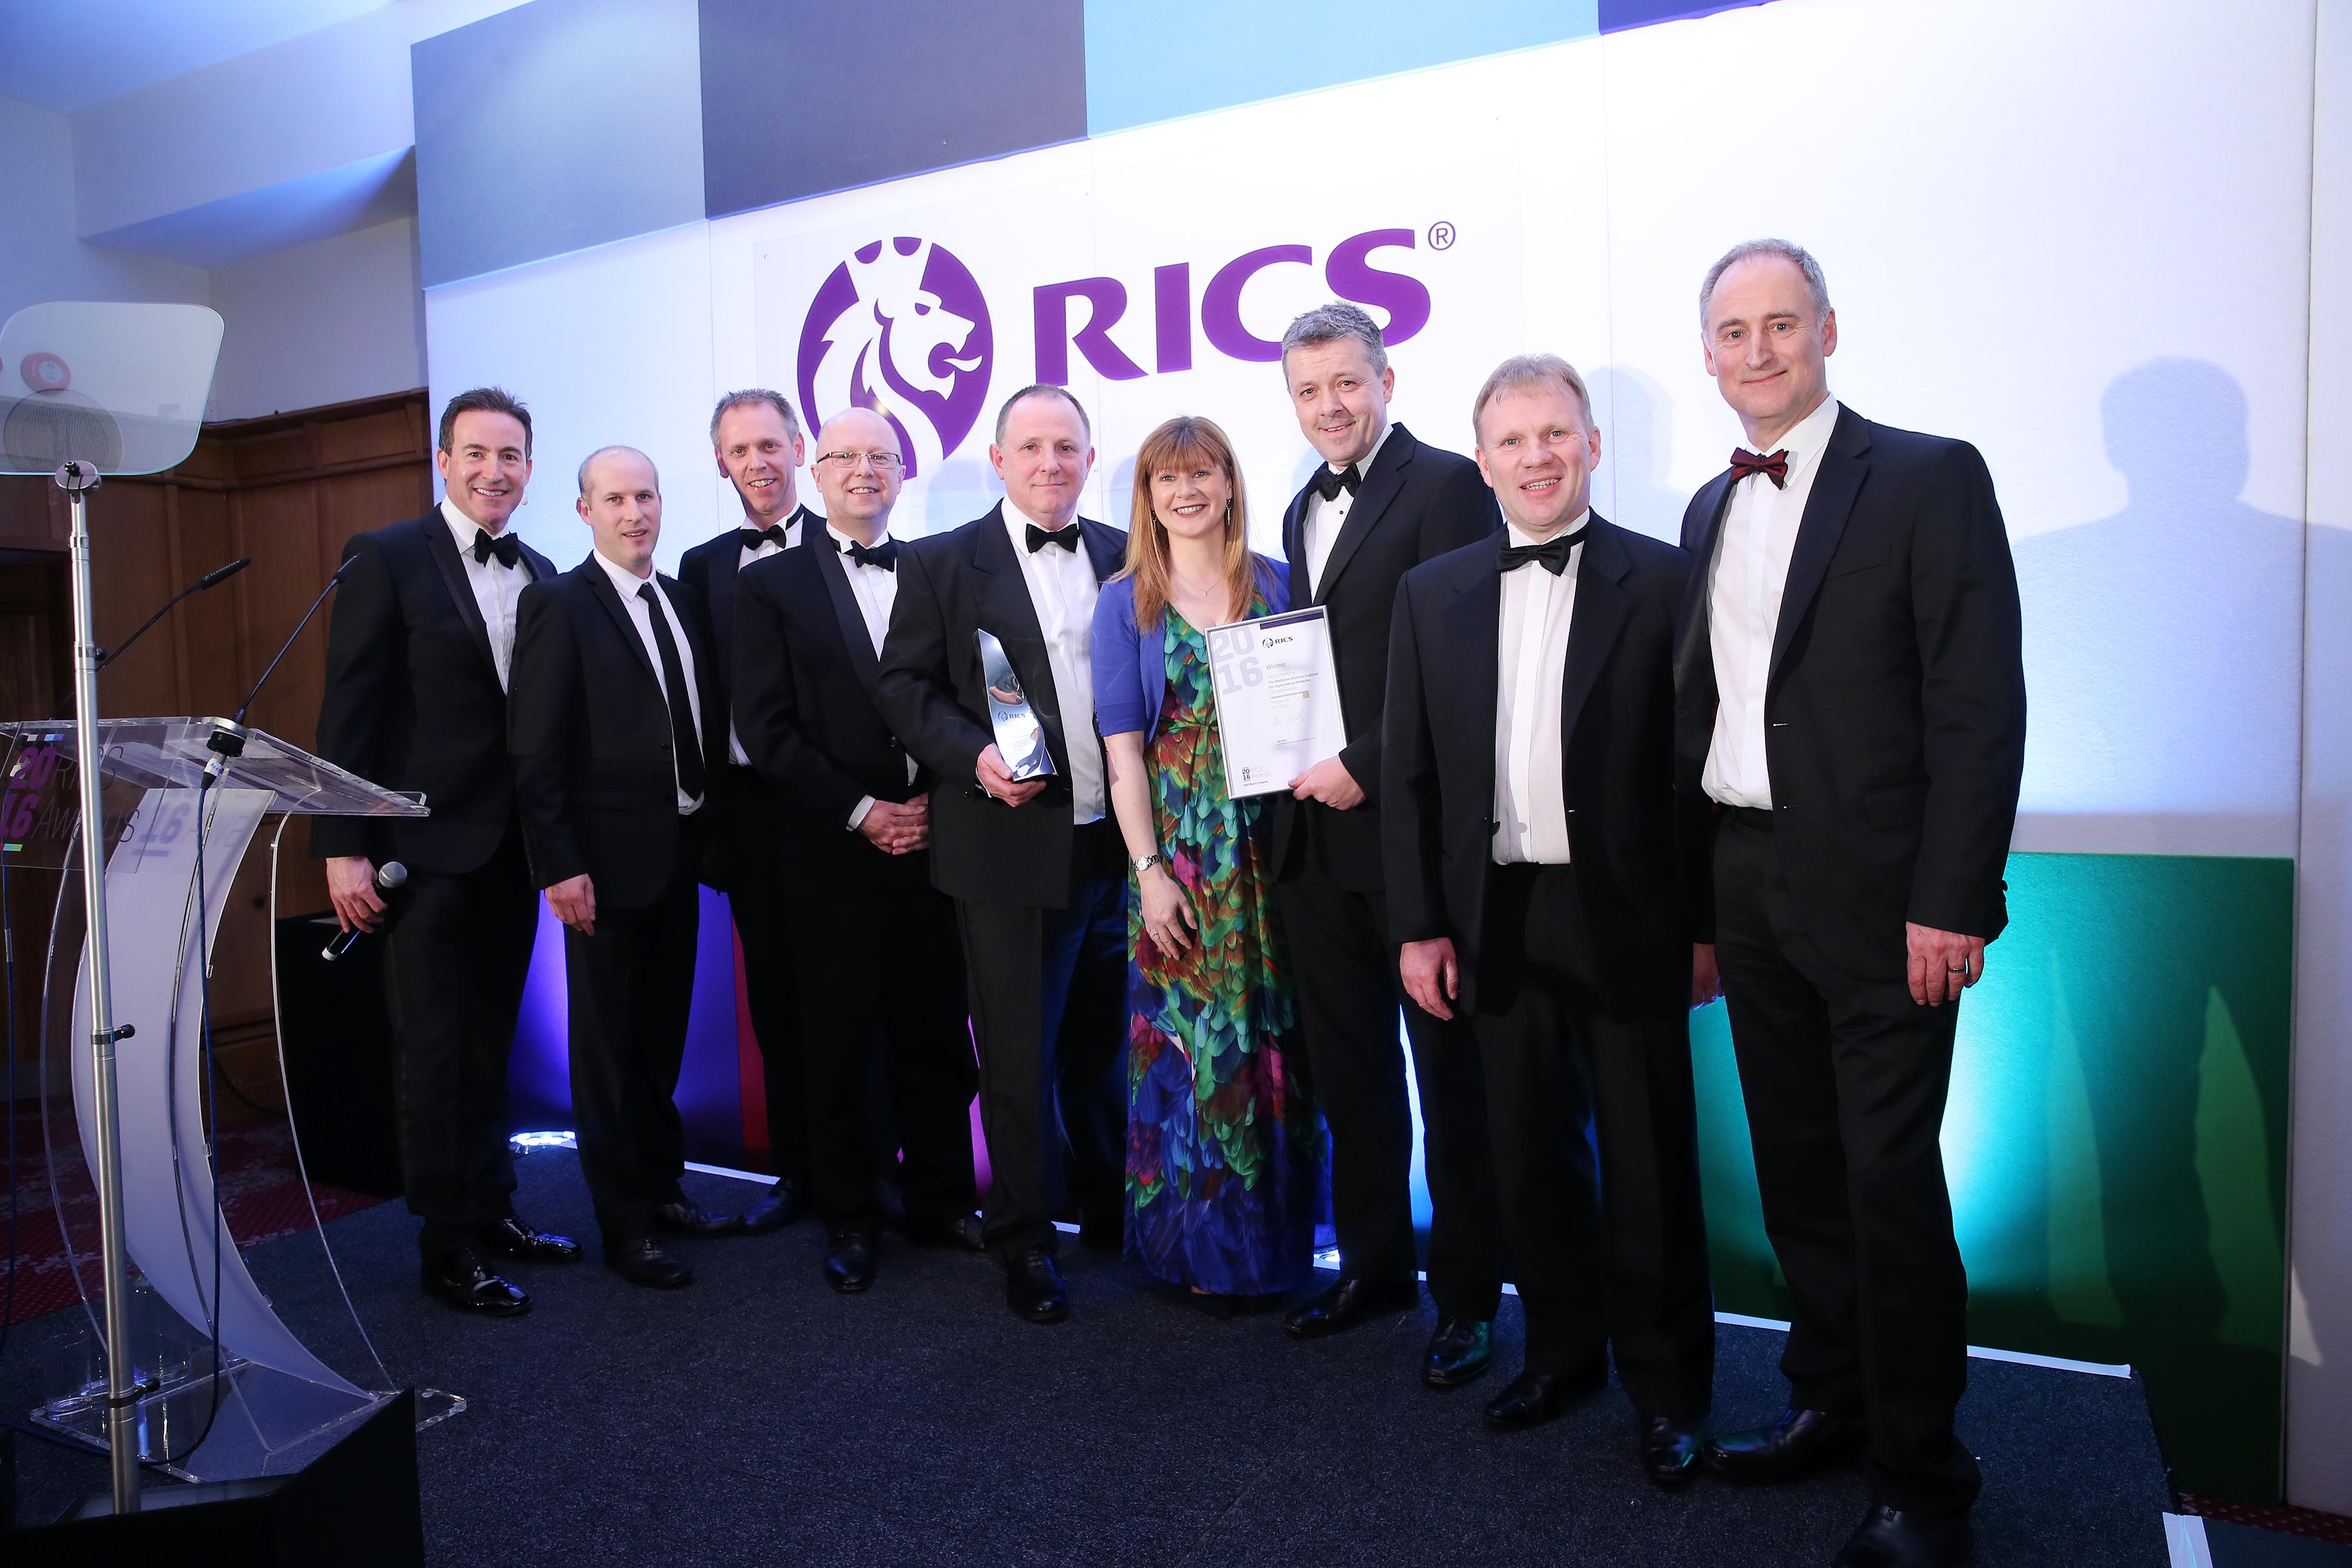 From Left to Right: Barry Kane, Andrew McKeown, Connor Kilgallen, John Nugent, Fiona Grant, Colm Lavery, Robert Hall (Harvey Group) & Ken Geary